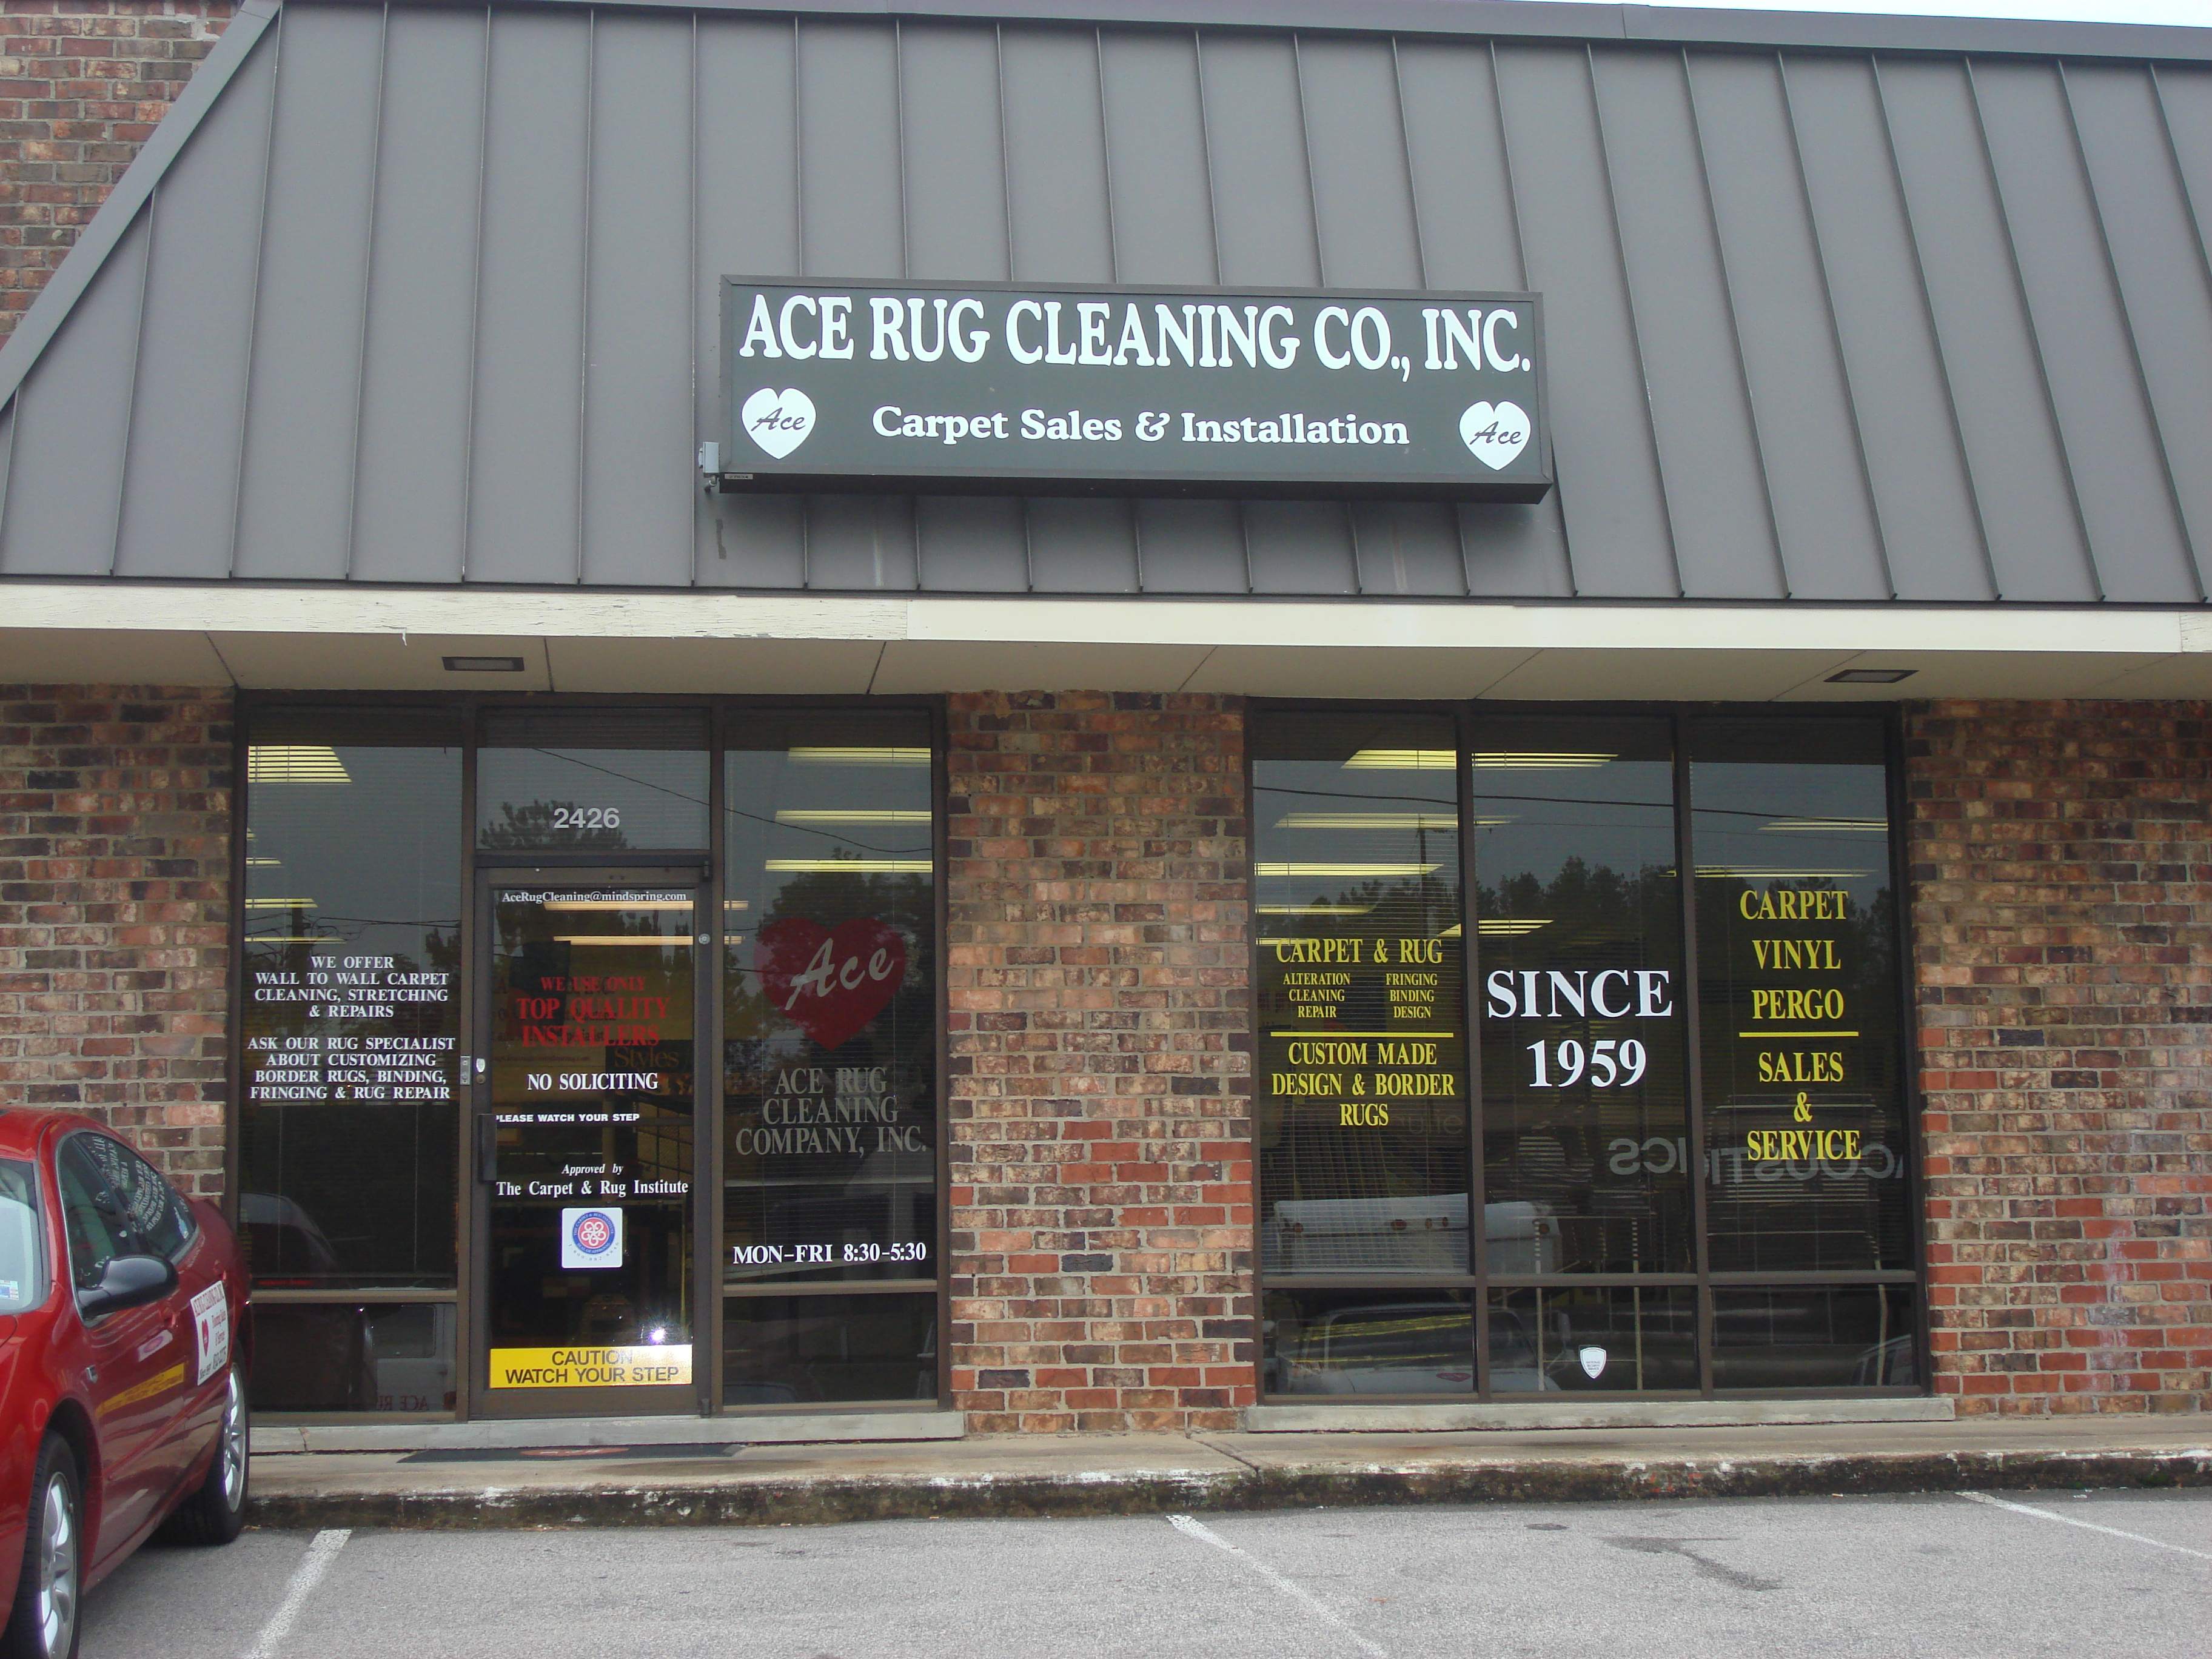 Ace Rug Cleaning Company Inc 2426